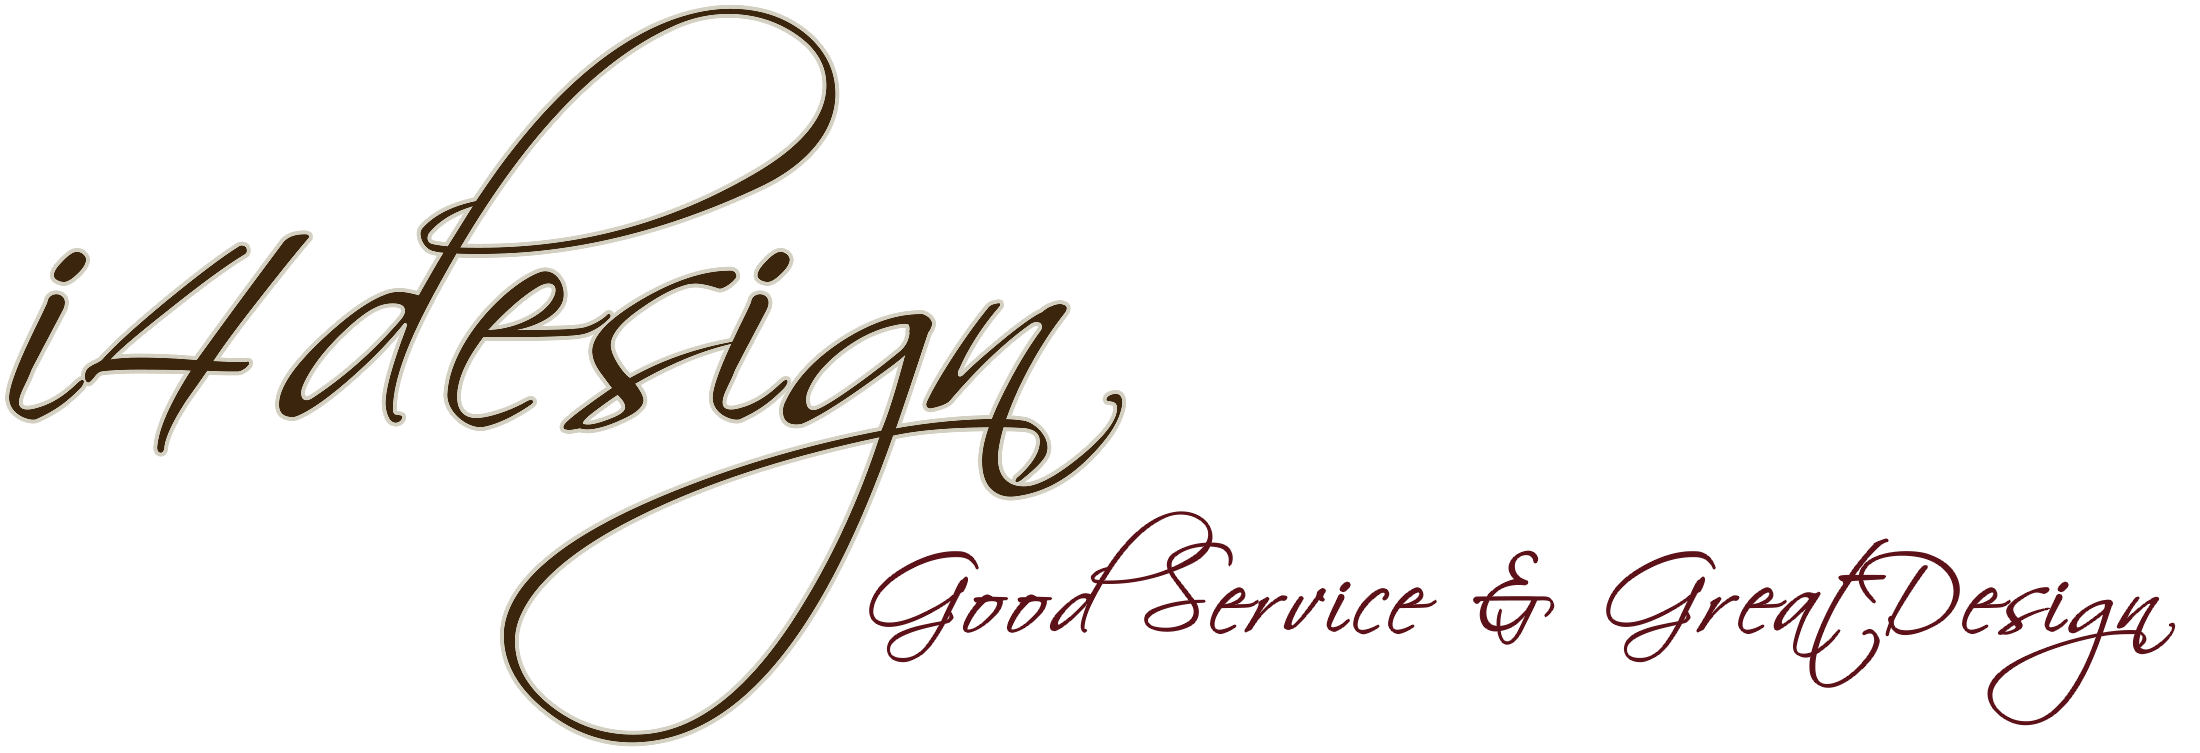 i4design Good Service & Great Design